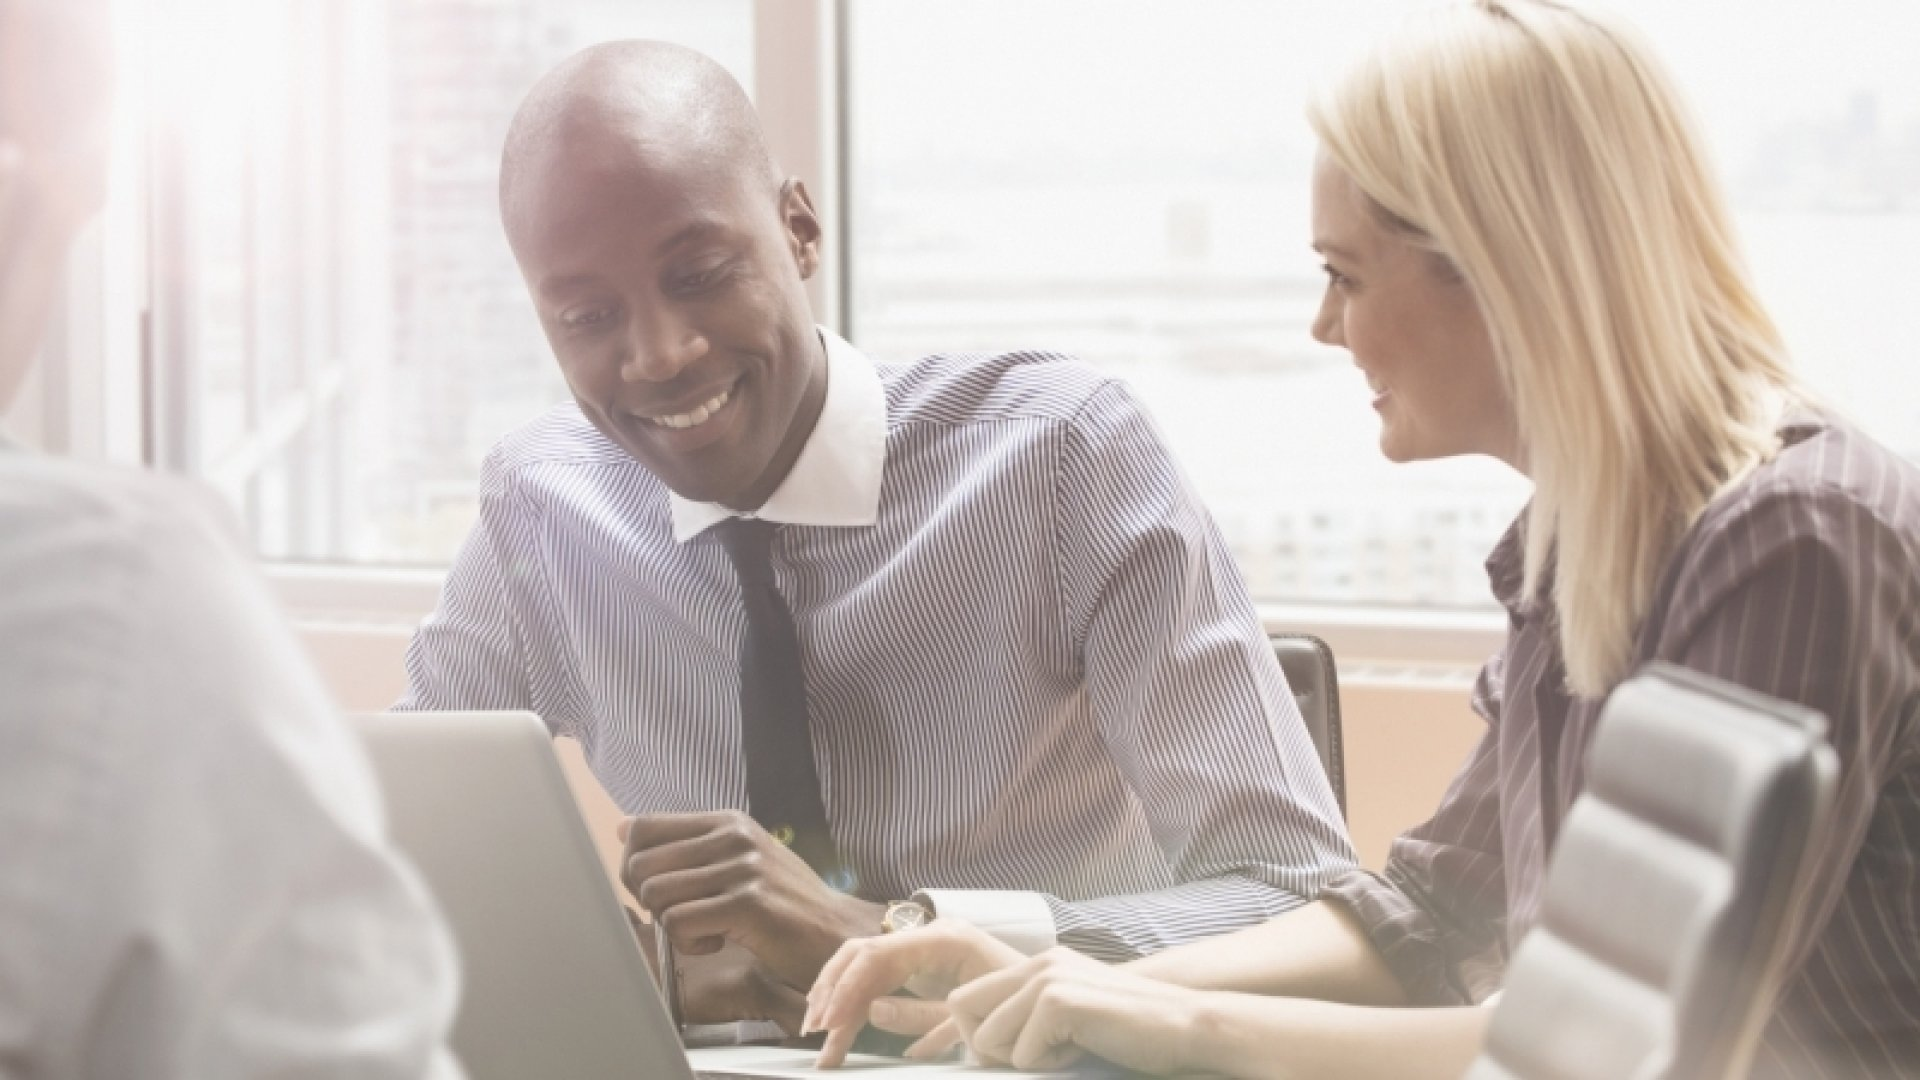 How to Build Rapport and Embrace Differences